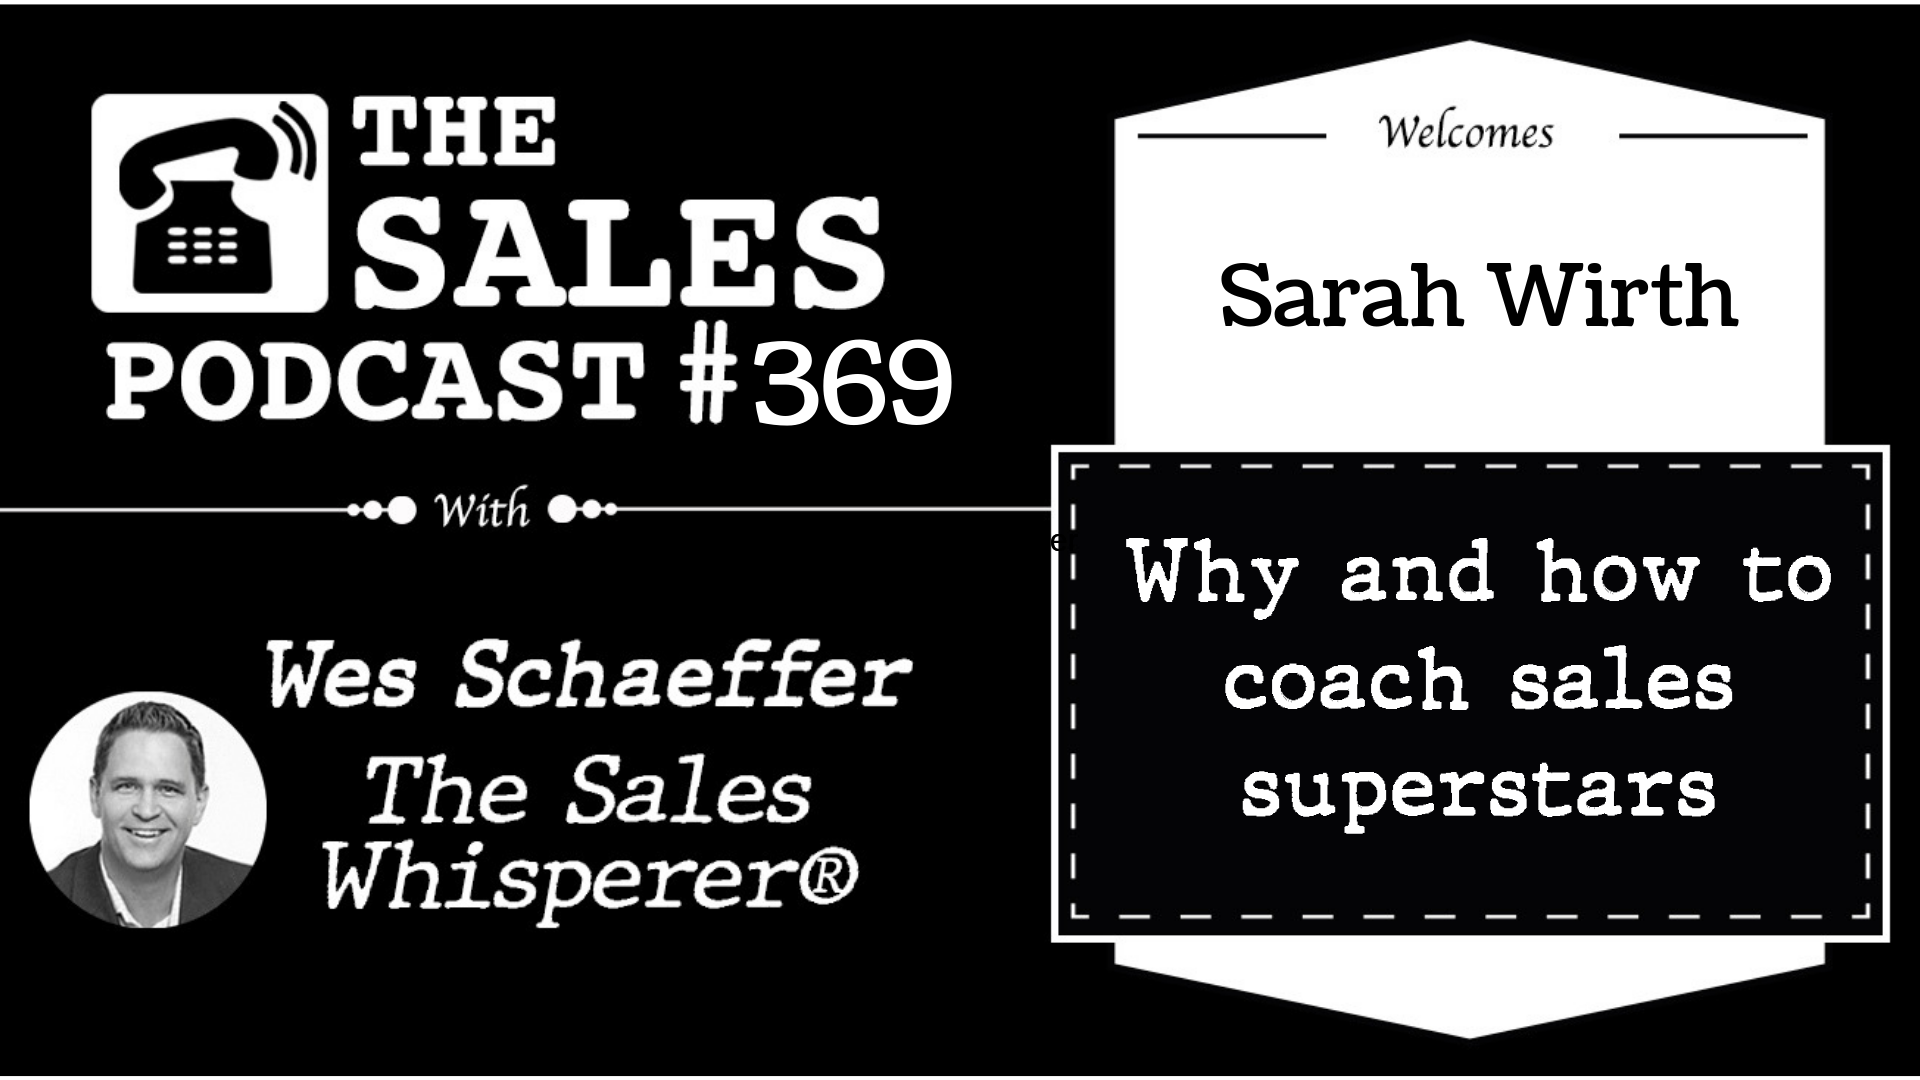 How to Hire and Build Sales Superstars, Sarah Wirth